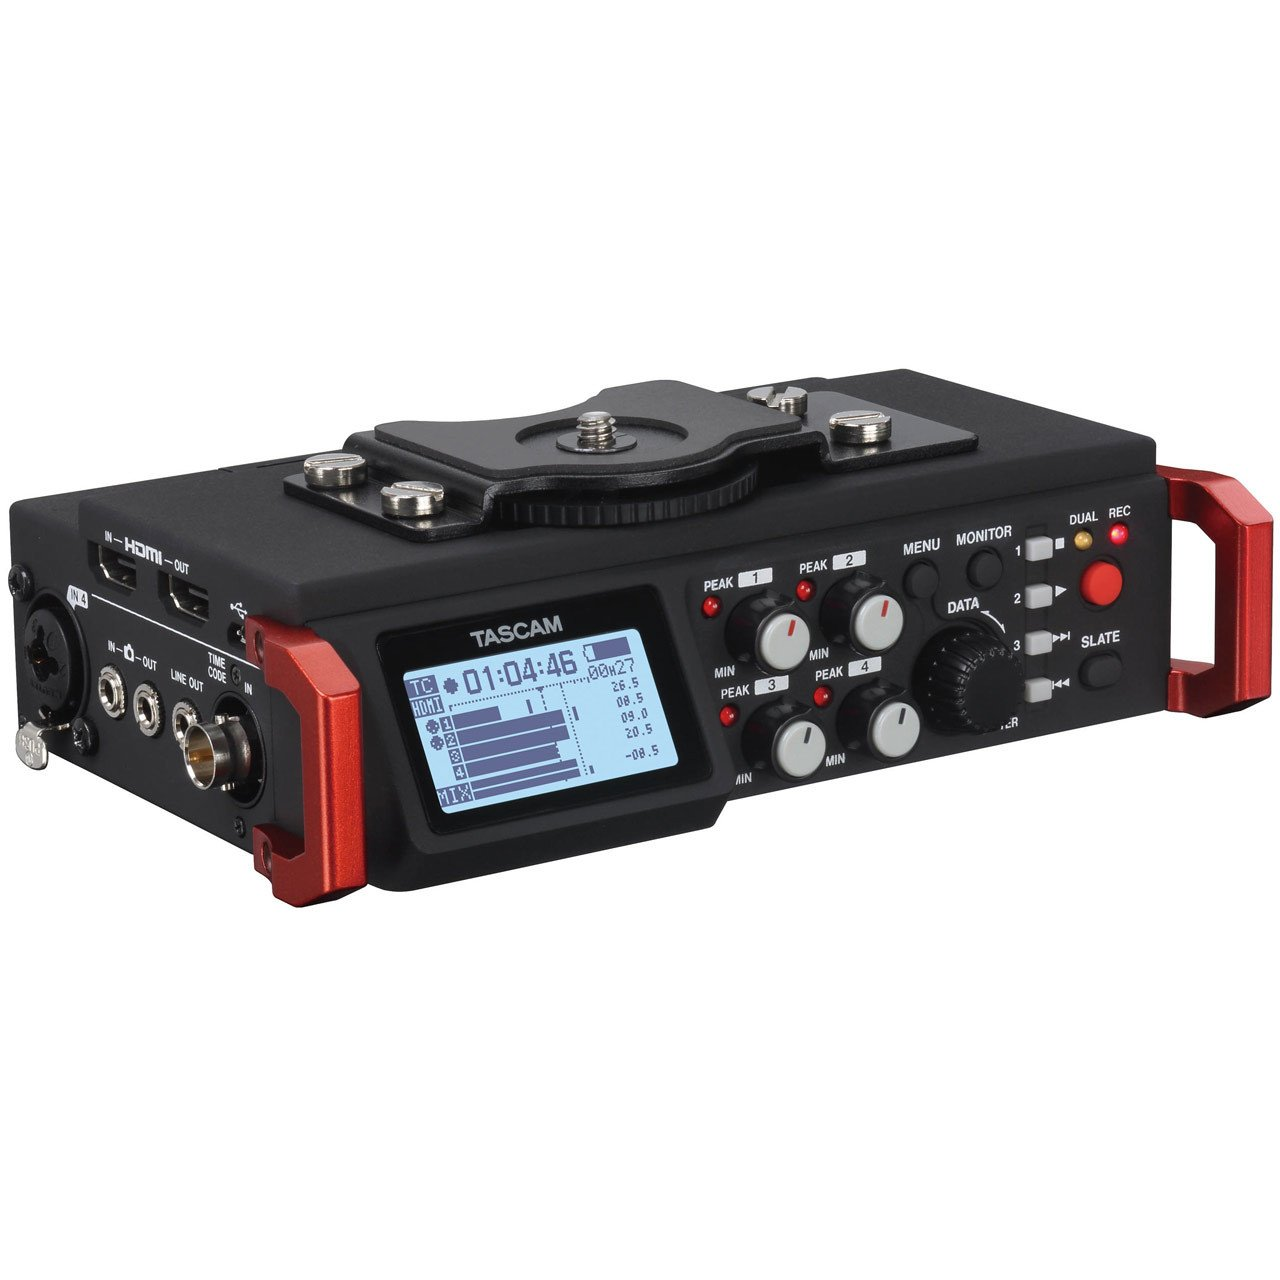 Portable Recorder - Tascam DR-701D Linear PCM Recorder/Mixer For DSLR Camera